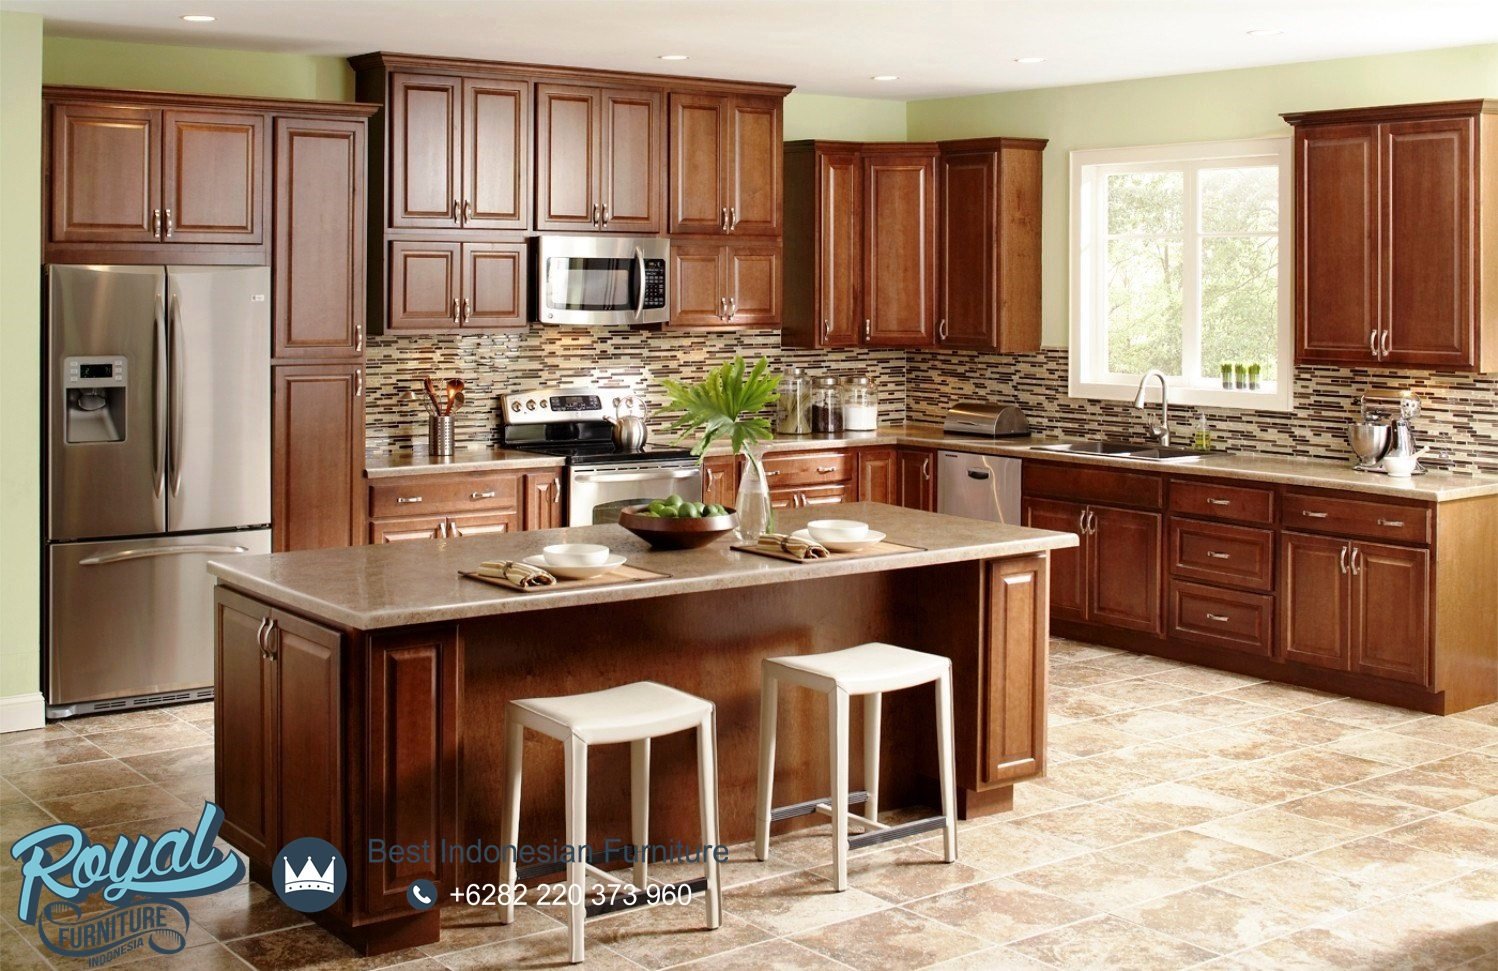 Kitchen Set Kayu Jati Jepara American Design Terbaru, meja bar kayu jati, meja bar, model meja bar, desain meja bar ukiran, kitchen set, kitchen set kayu ukiran jepara, kitchen set kayu, kitchen set model terbaru, harga kitchen set kayu jati, lemari kitchen set kayu jati, kitchen set kayu jati belanda, harga kitchen set kayu, harga kitchen set jati jepara minimalis, kitchen set minimalis, kitchen set klasik, jual kitchen set kayu jepara, kitchen set kayu mahoni, kitchen set kayu solid, model kitchen set terbaru, design kitchen set terbaru, kitchen set murah kayu jepara, lemari dapur, desain kitchen set kayu terbaru, model kitchen set modern, kitchen set meja bar, meja bar kayu jati, royal furniture